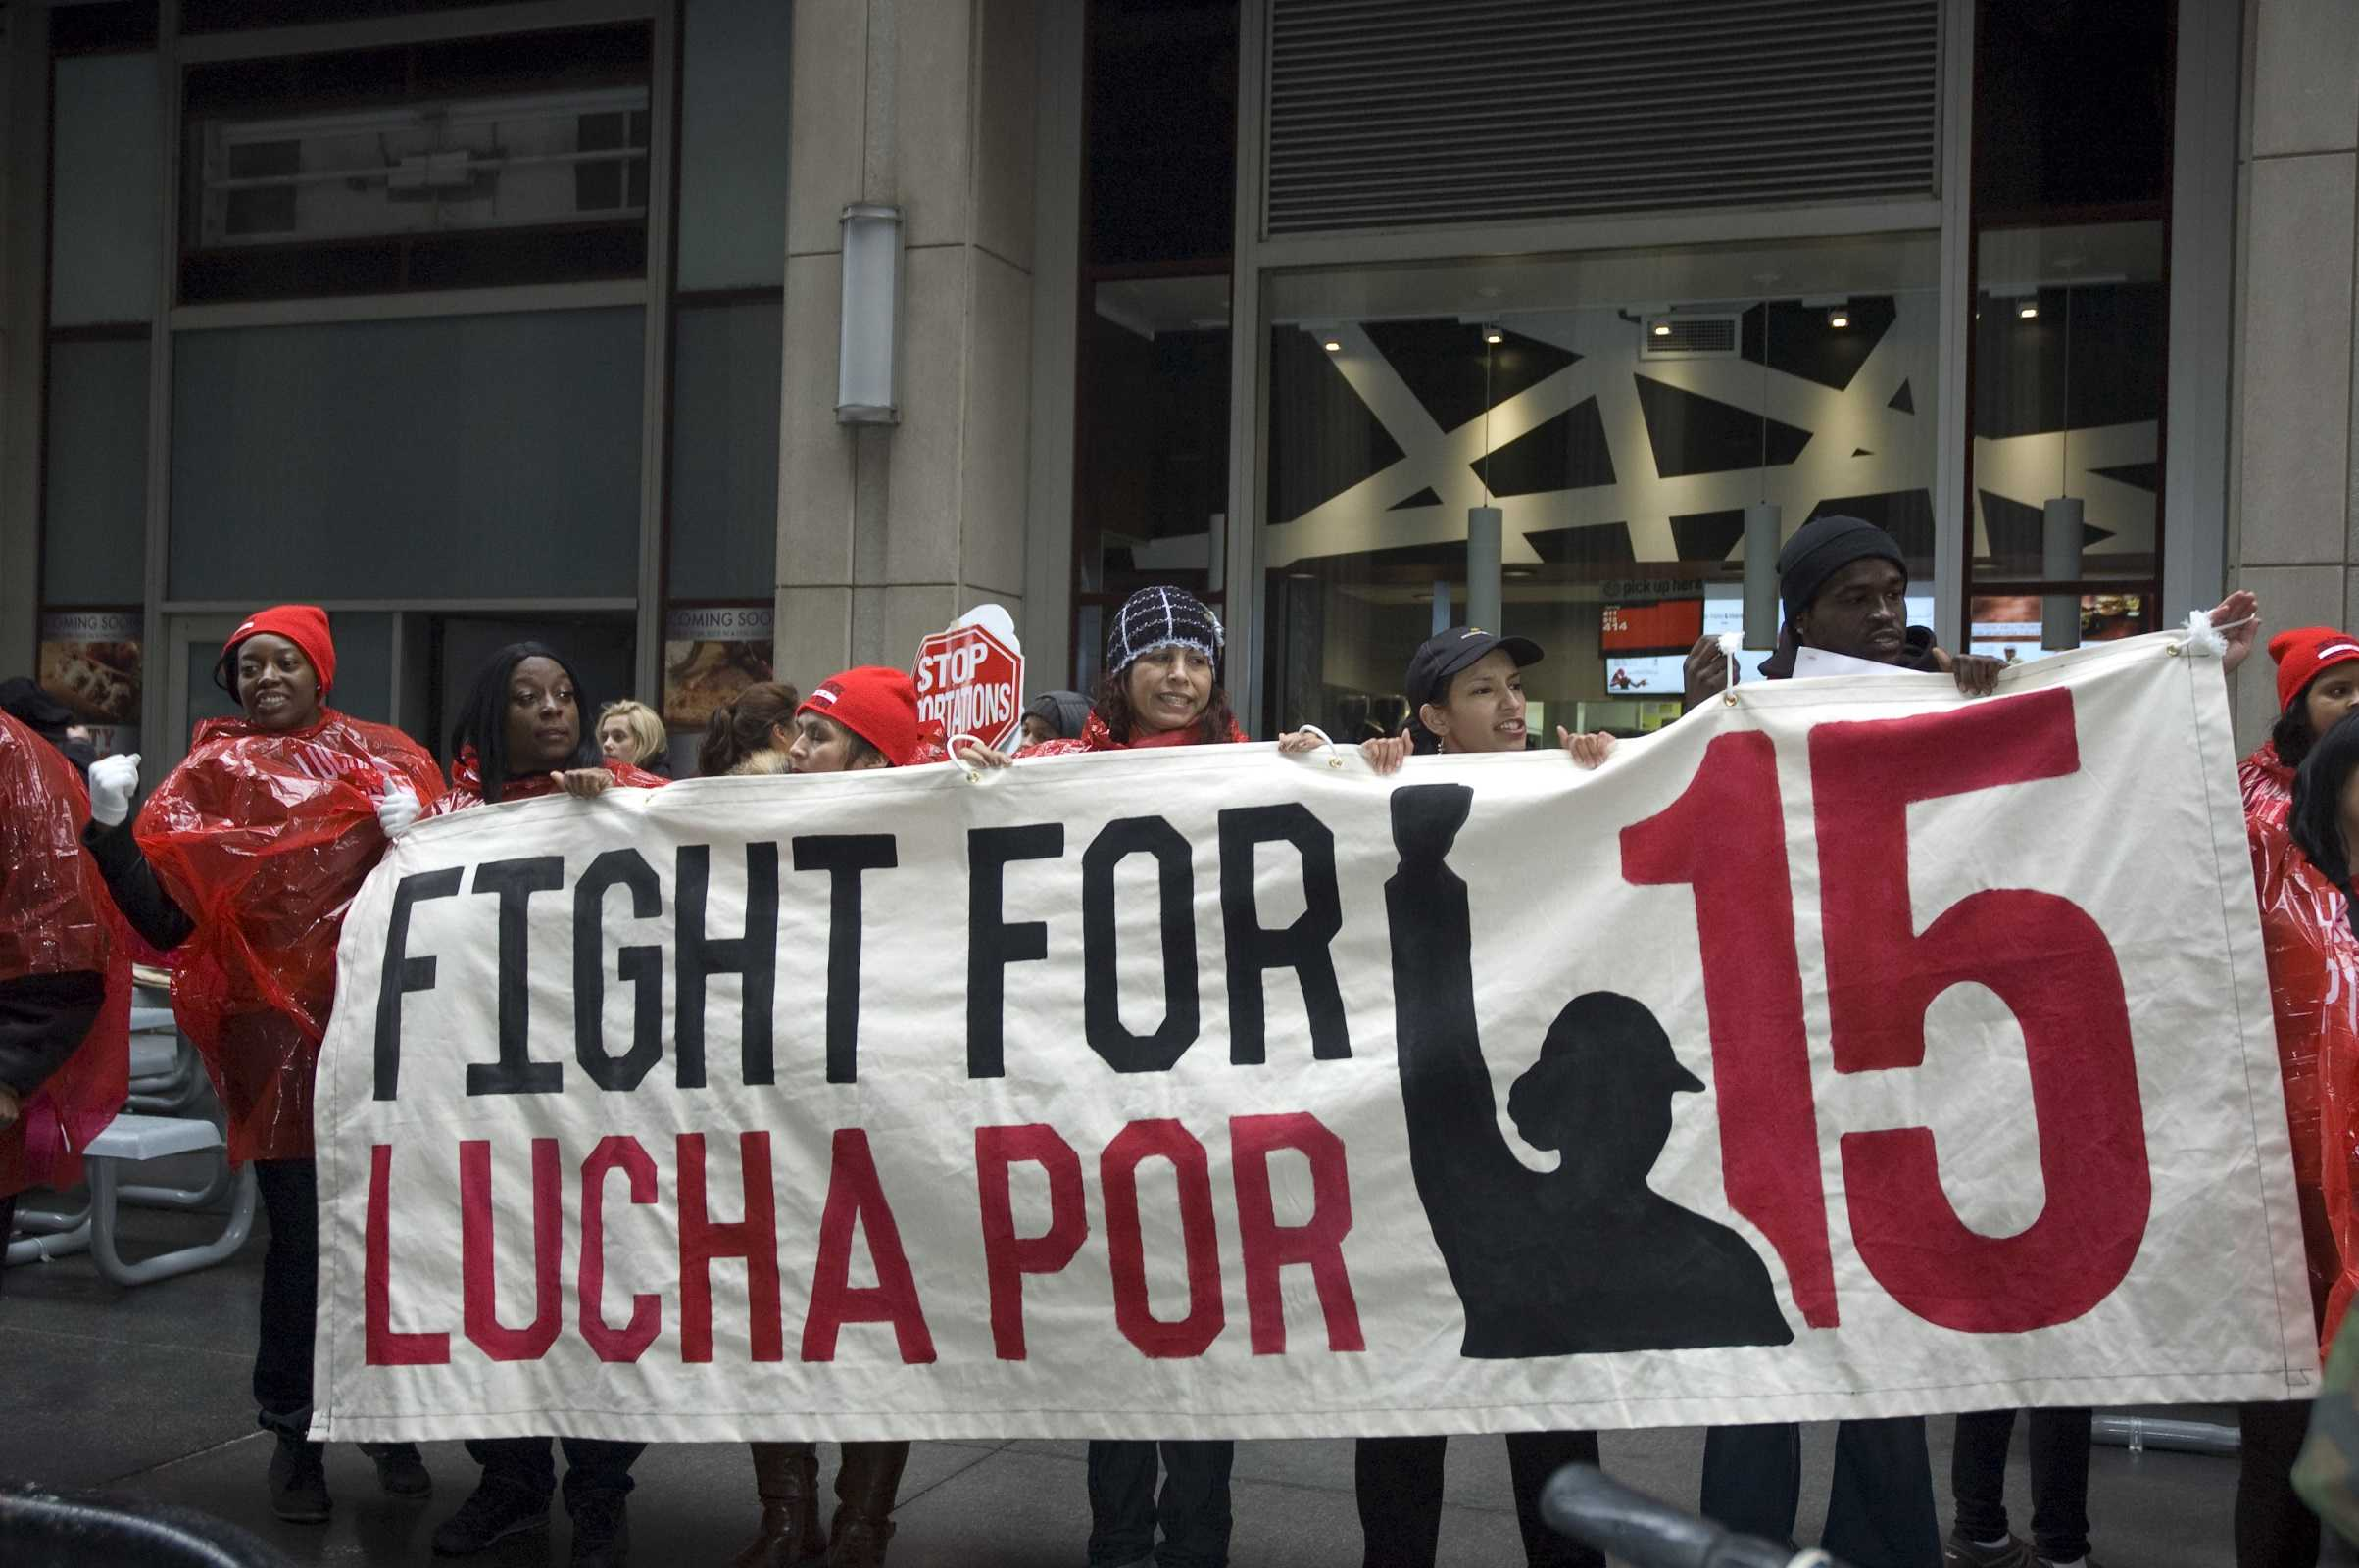 Citizens rally in support of minimum wage increase